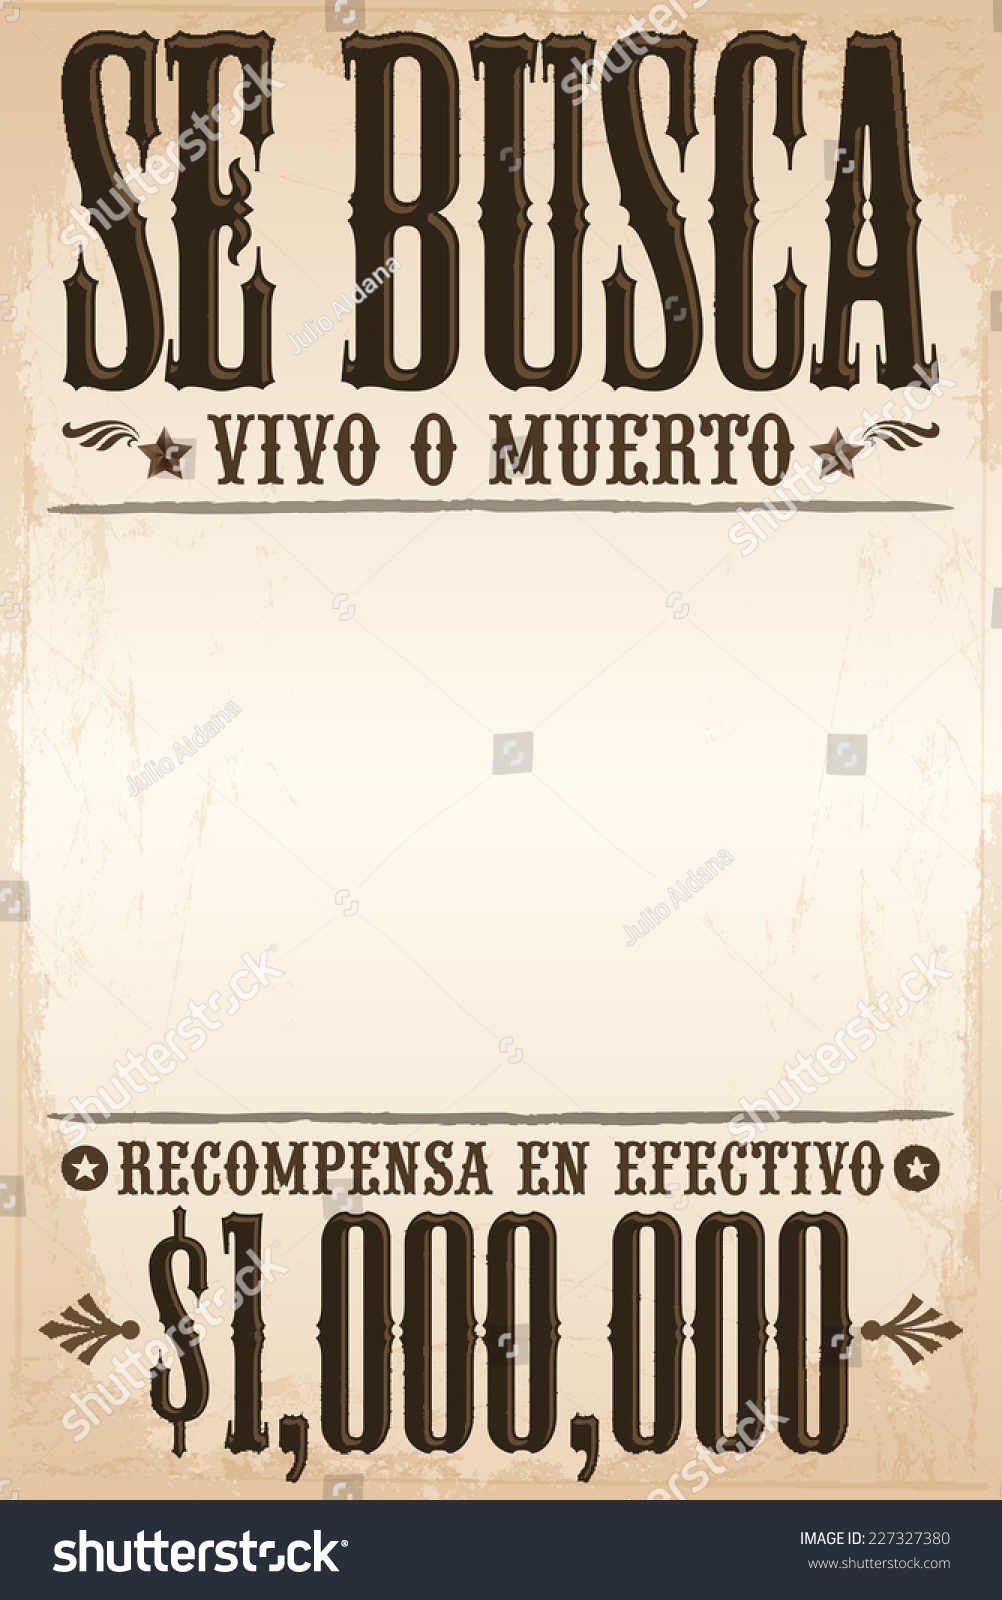 Se busca vivo o muerto wanted stock vector 227327380 for Wanted dead or alive poster template free